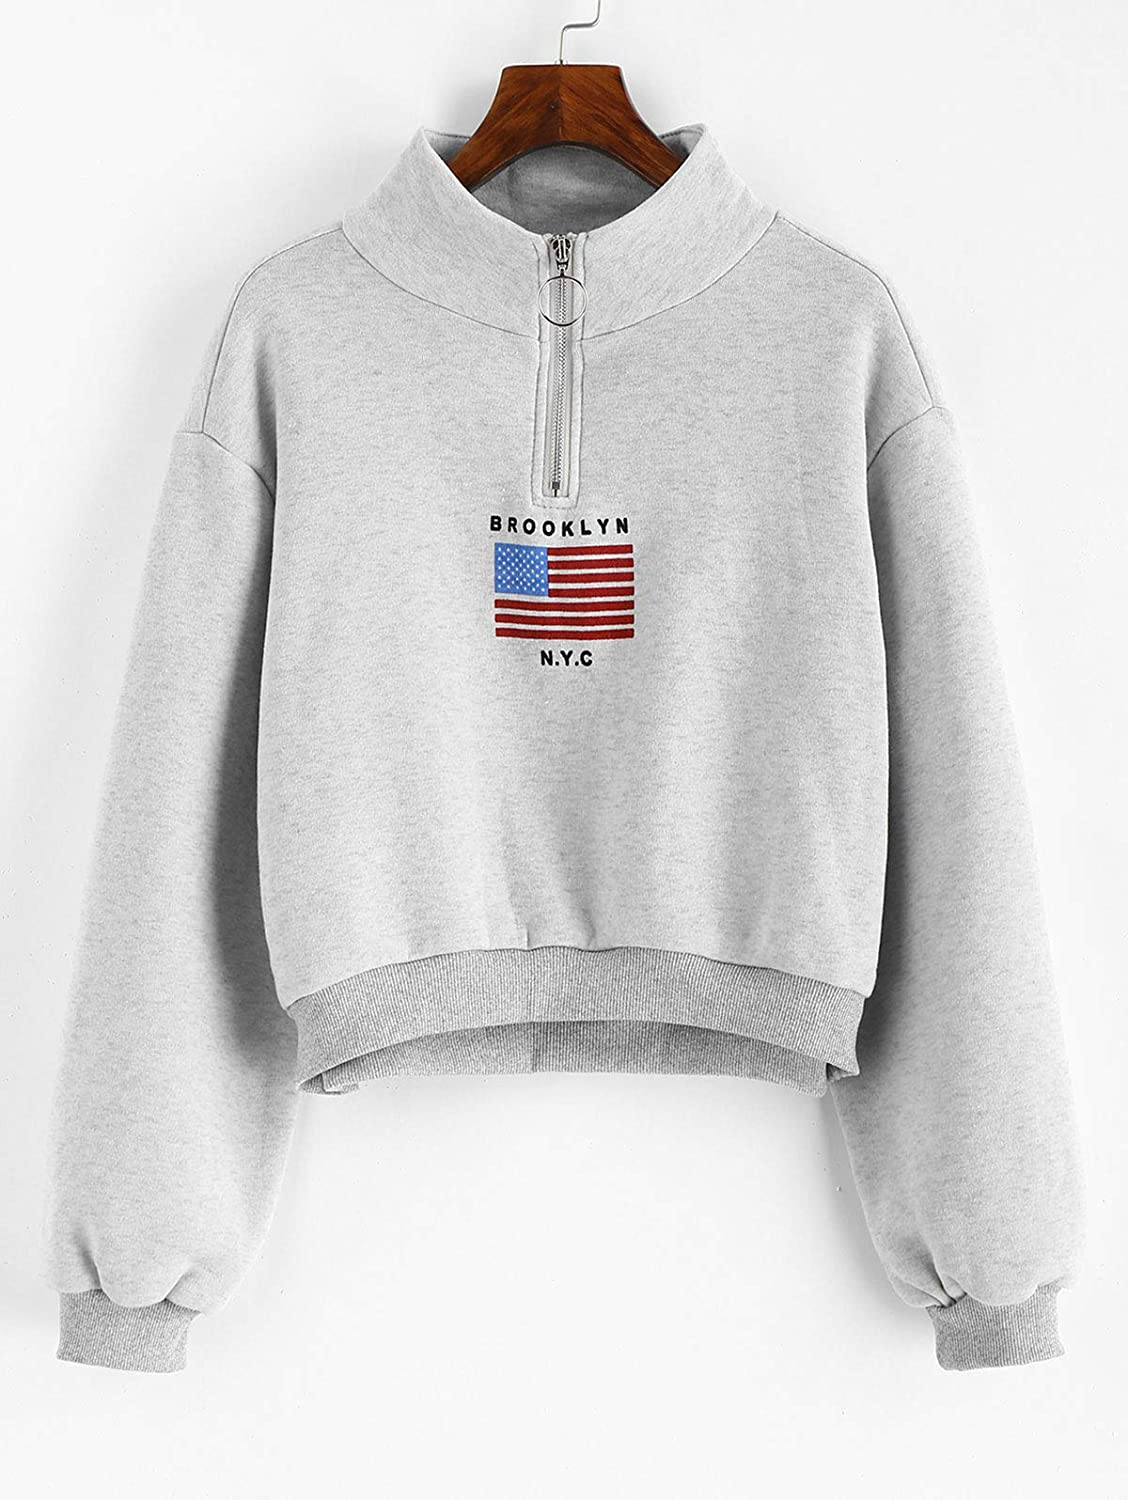 29ba3aea ZAFUL Women's American Flag Mock Neck Zipper Cropped Sweatshirt Half Zip  Casual Activewear at Amazon Women's Clothing store: